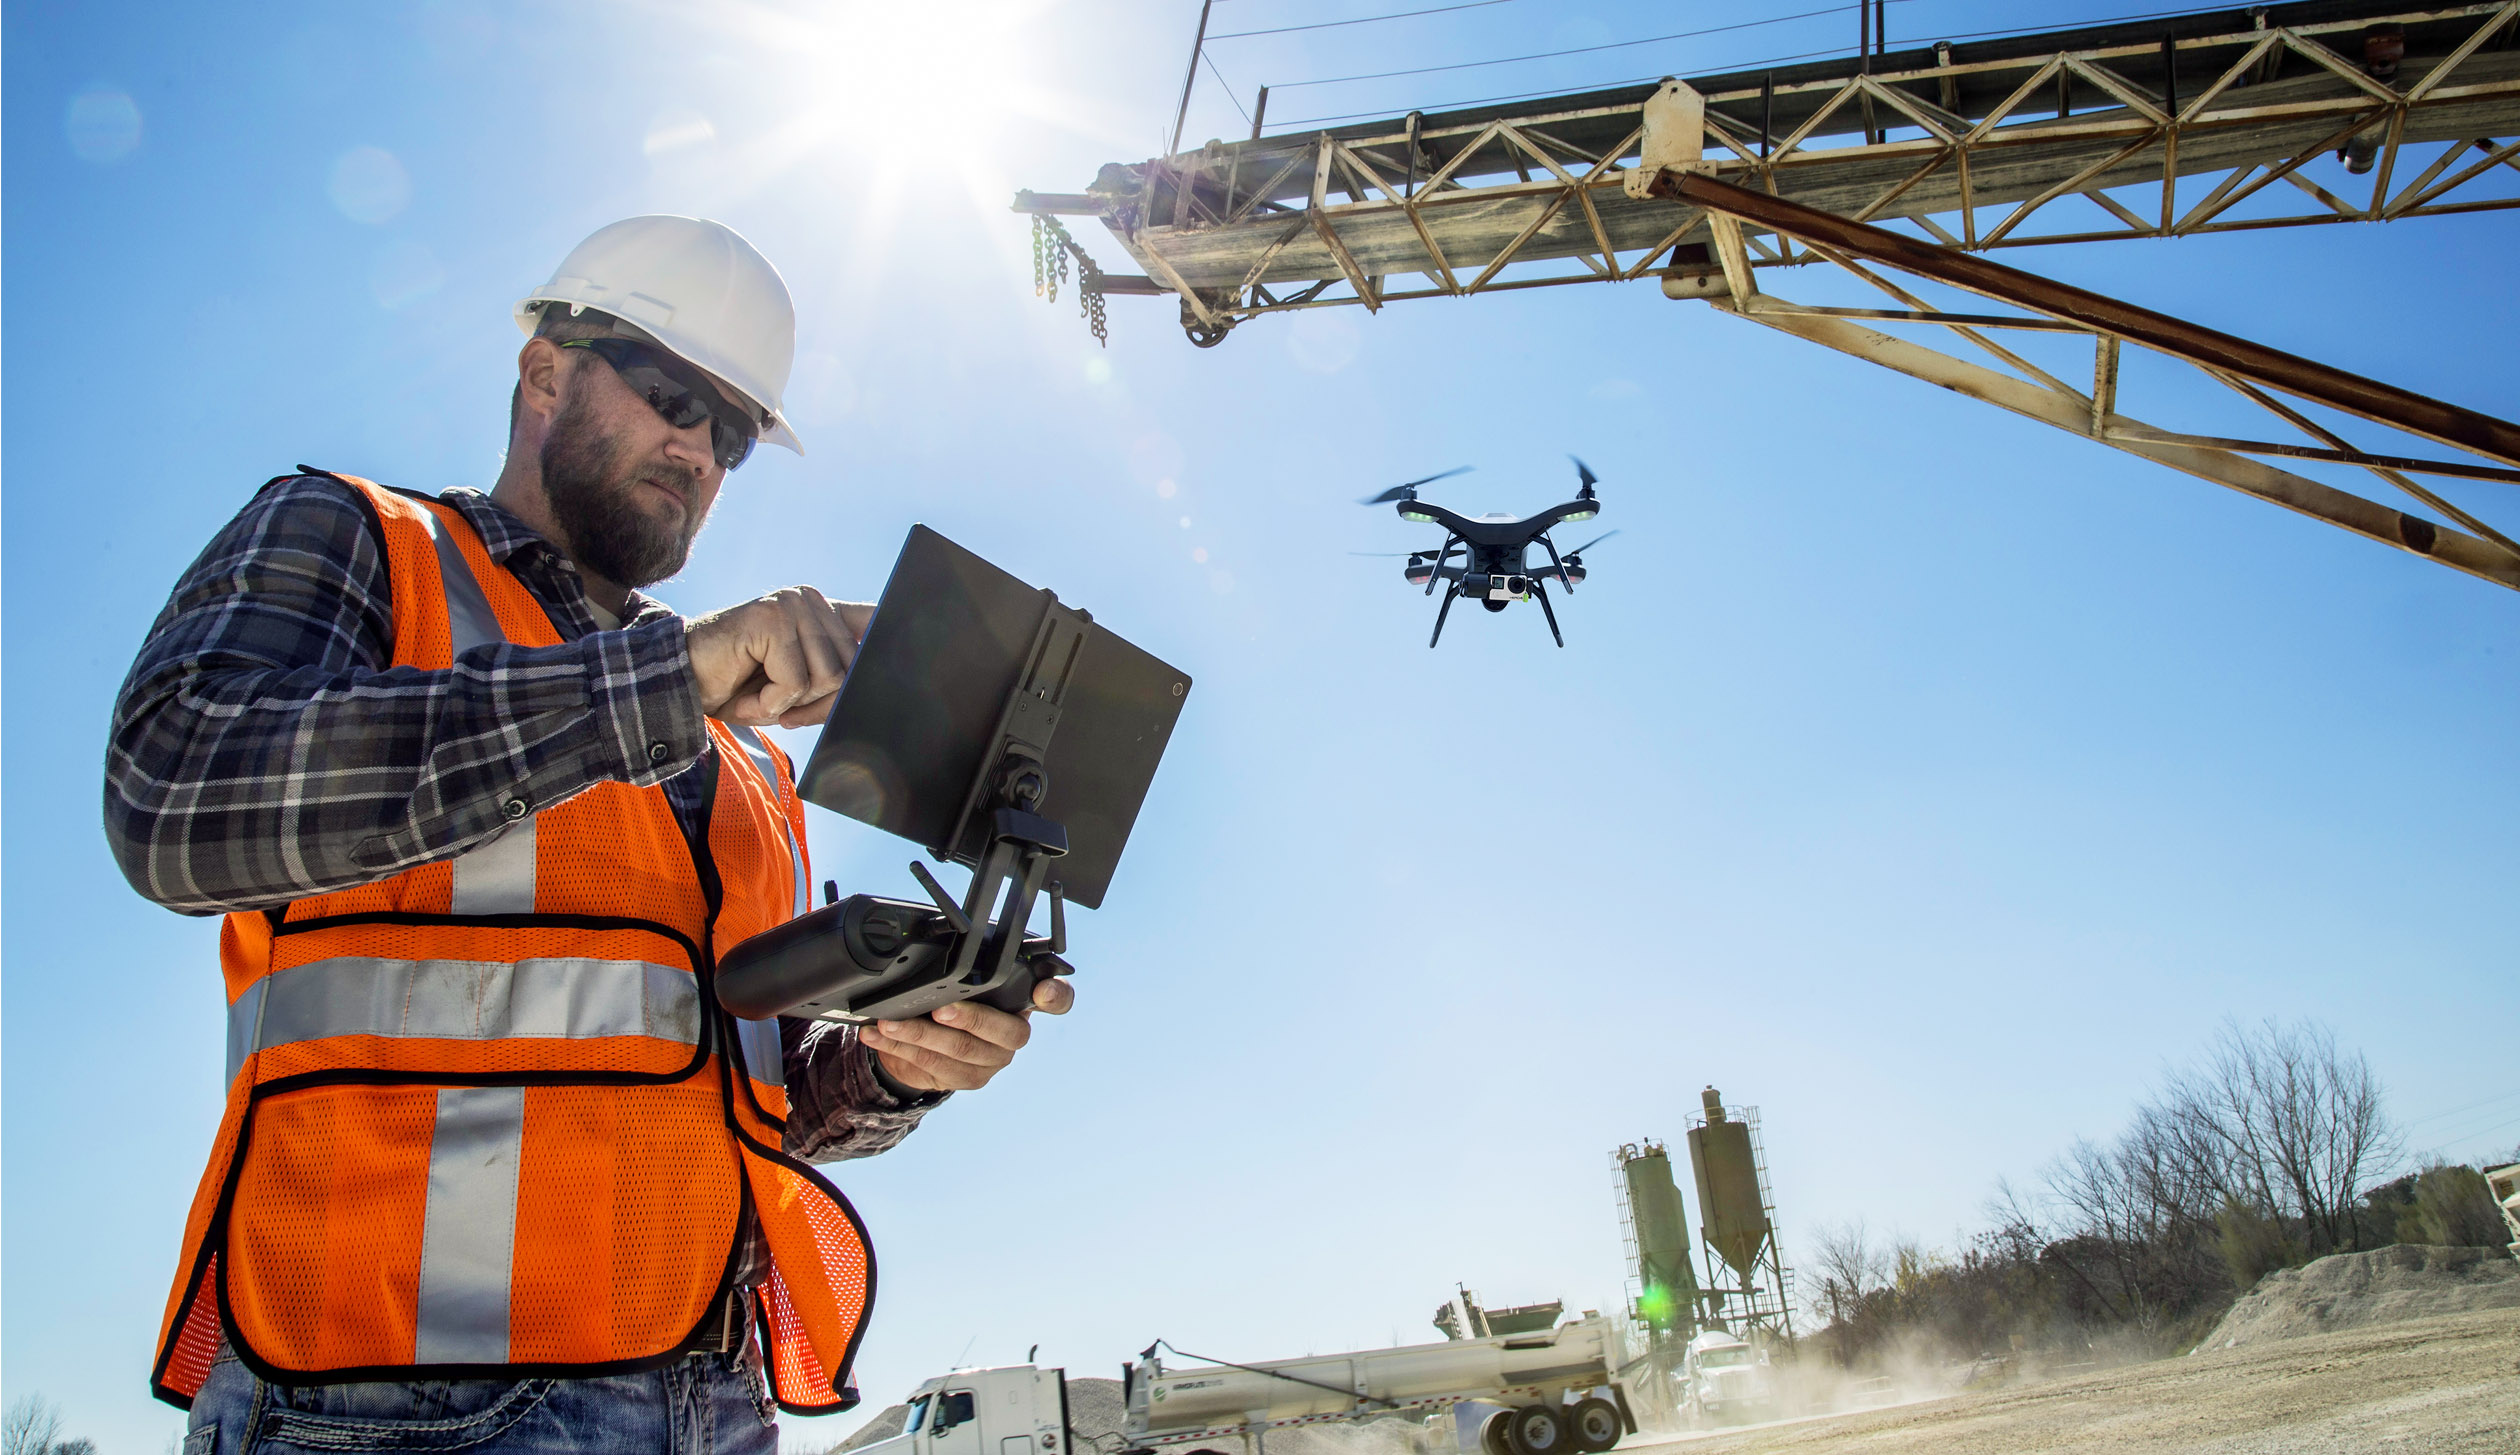 3D Robotics' aerial data system in action. Autodesk invested in the company in June as part of a broader bid to serve the construction industry.